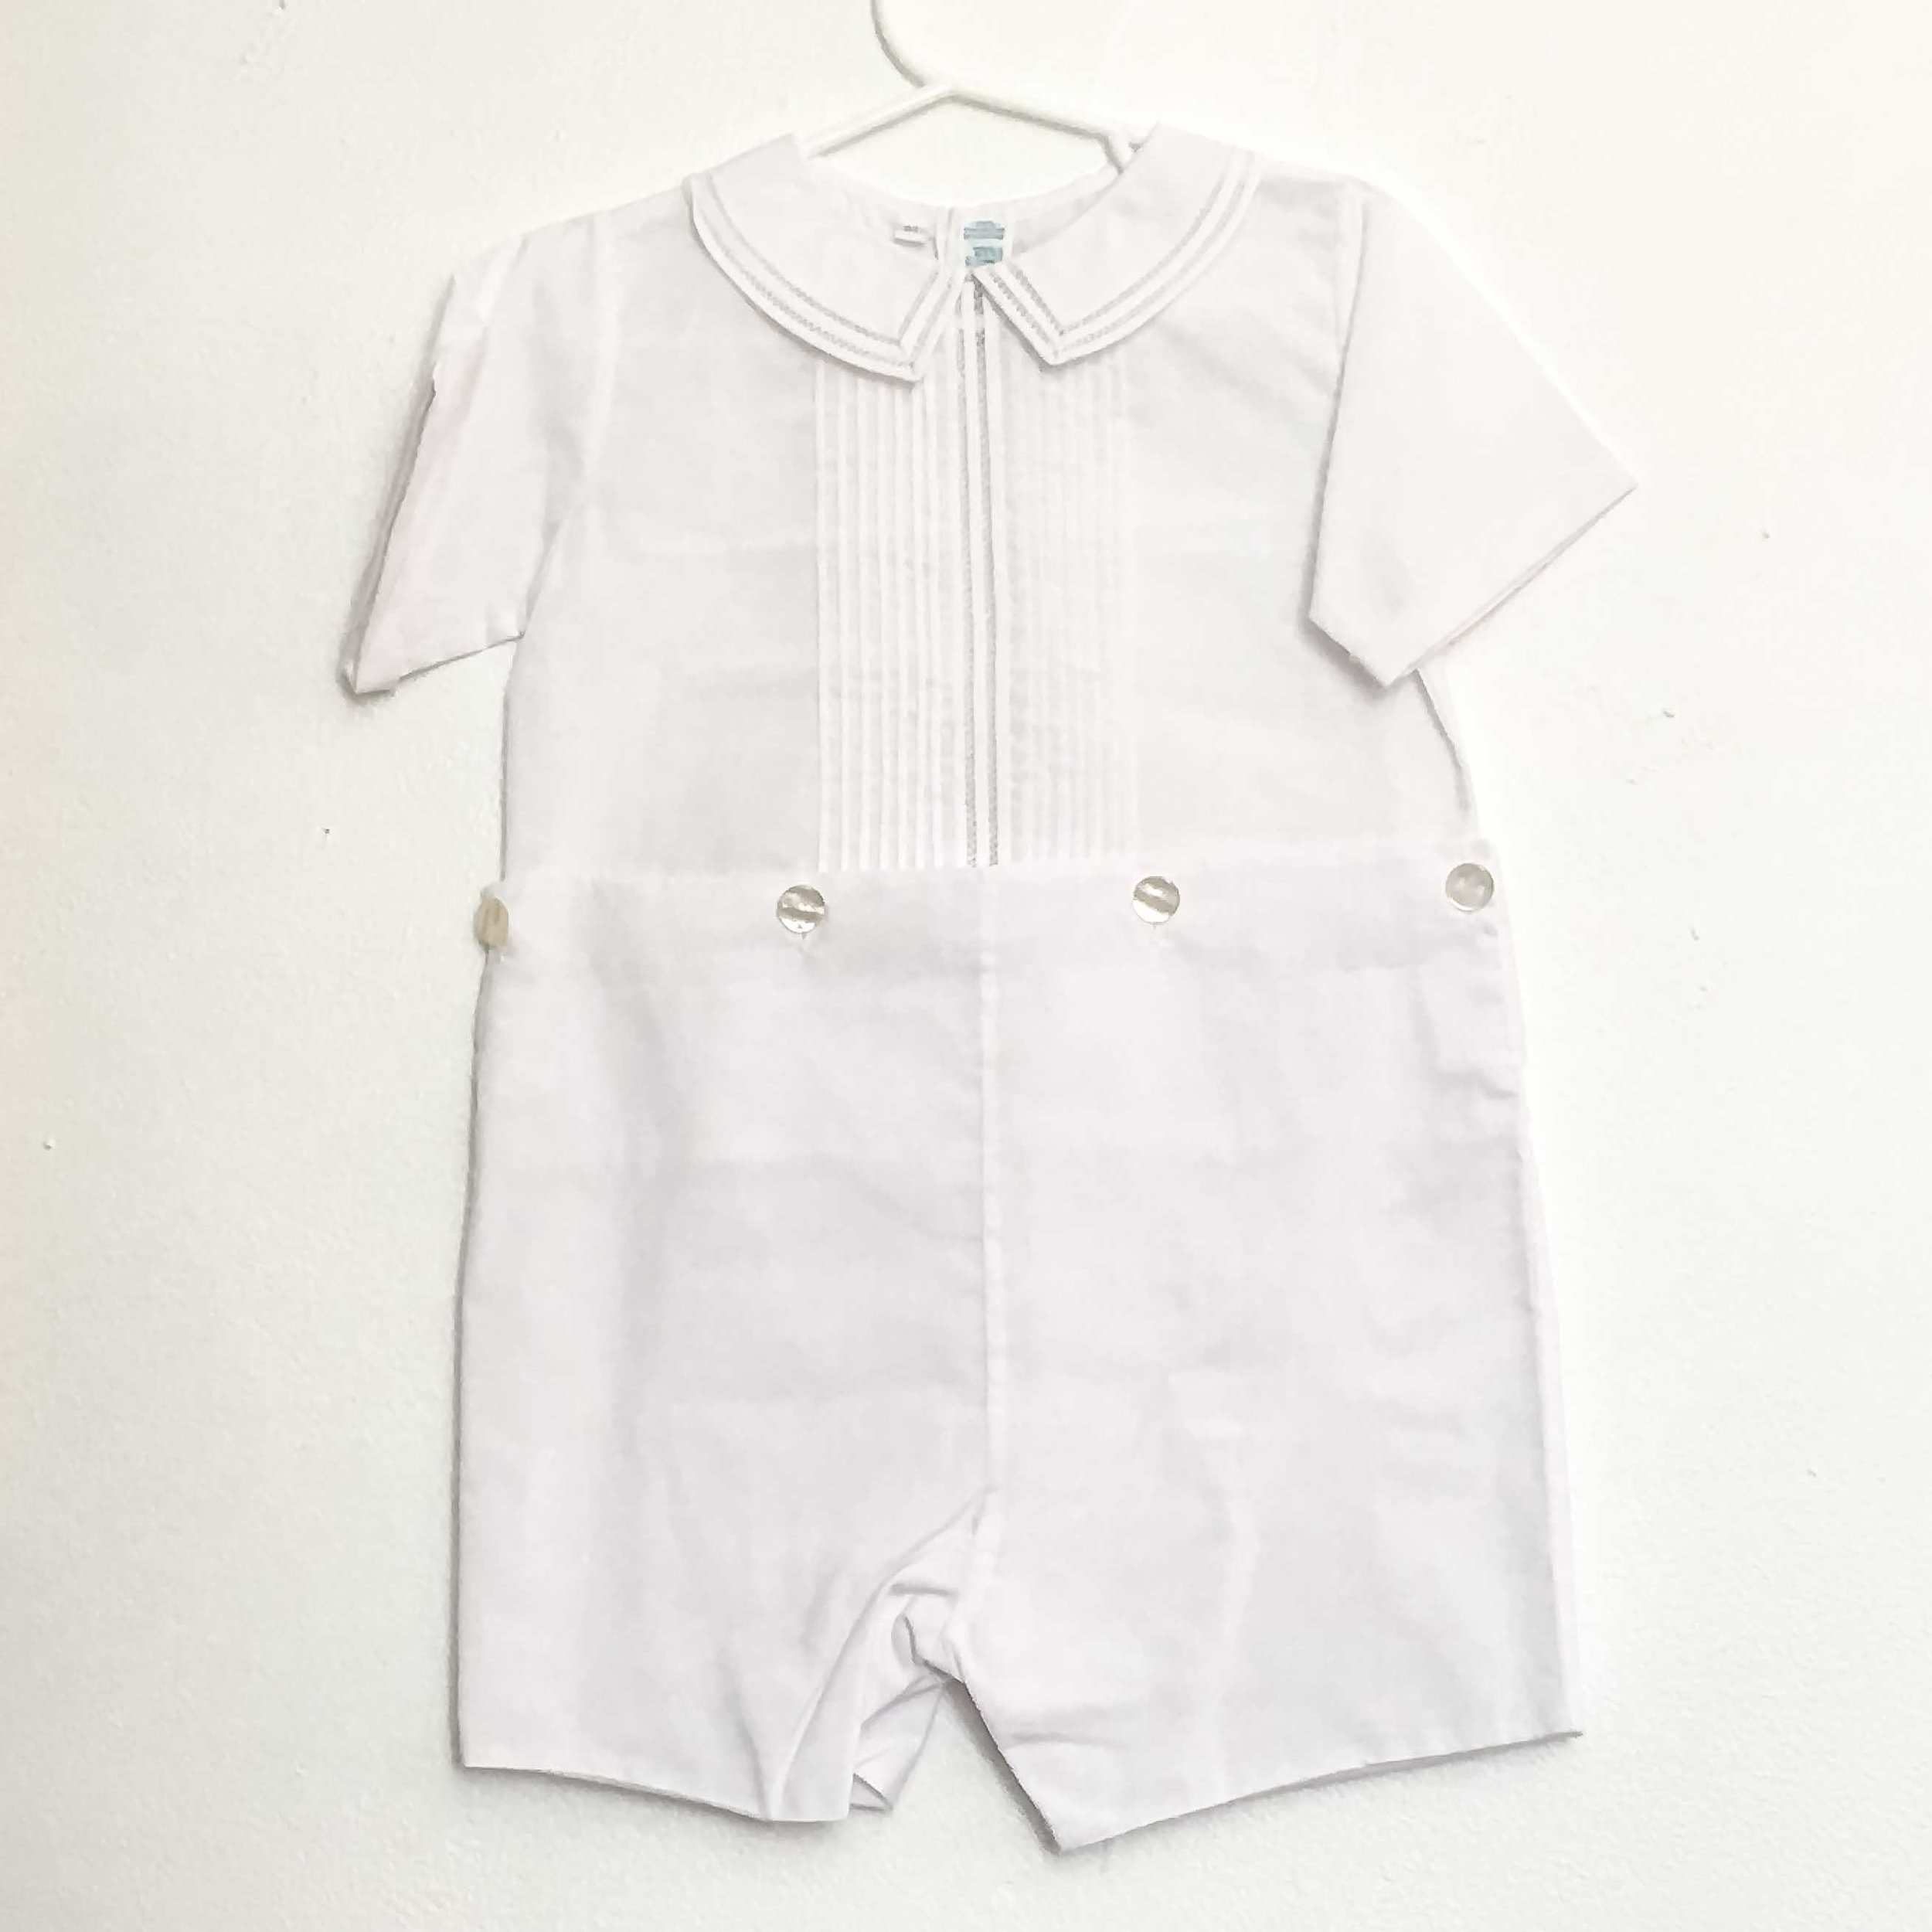 ORPCLOTHES-53.jpg